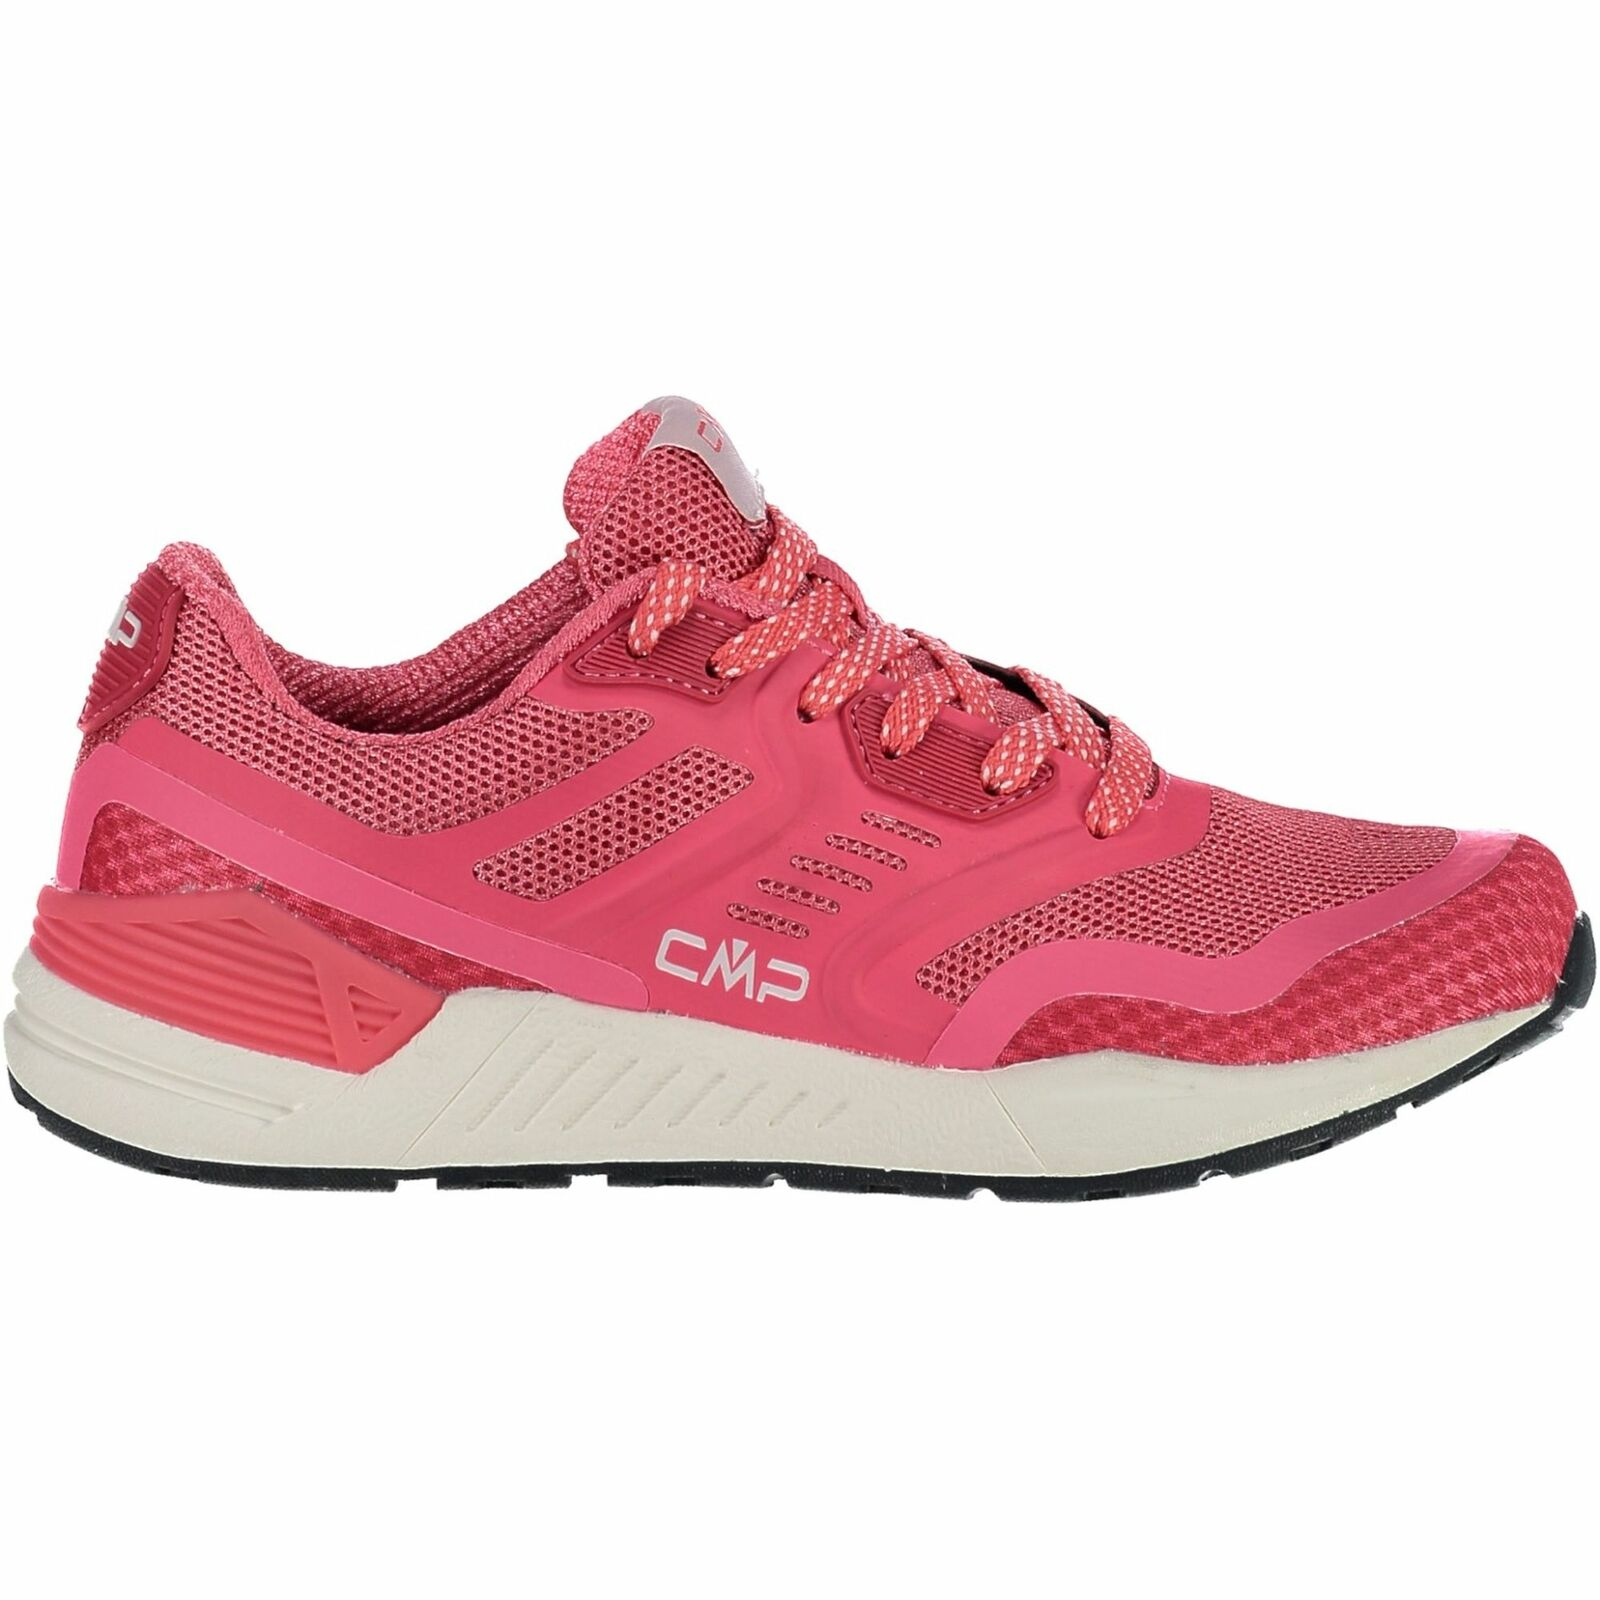 CMP Sneakers Sports  shoes Kuma Mesh WMN Lifestyle shoes Red Plain All Mesh  factory outlet online discount sale